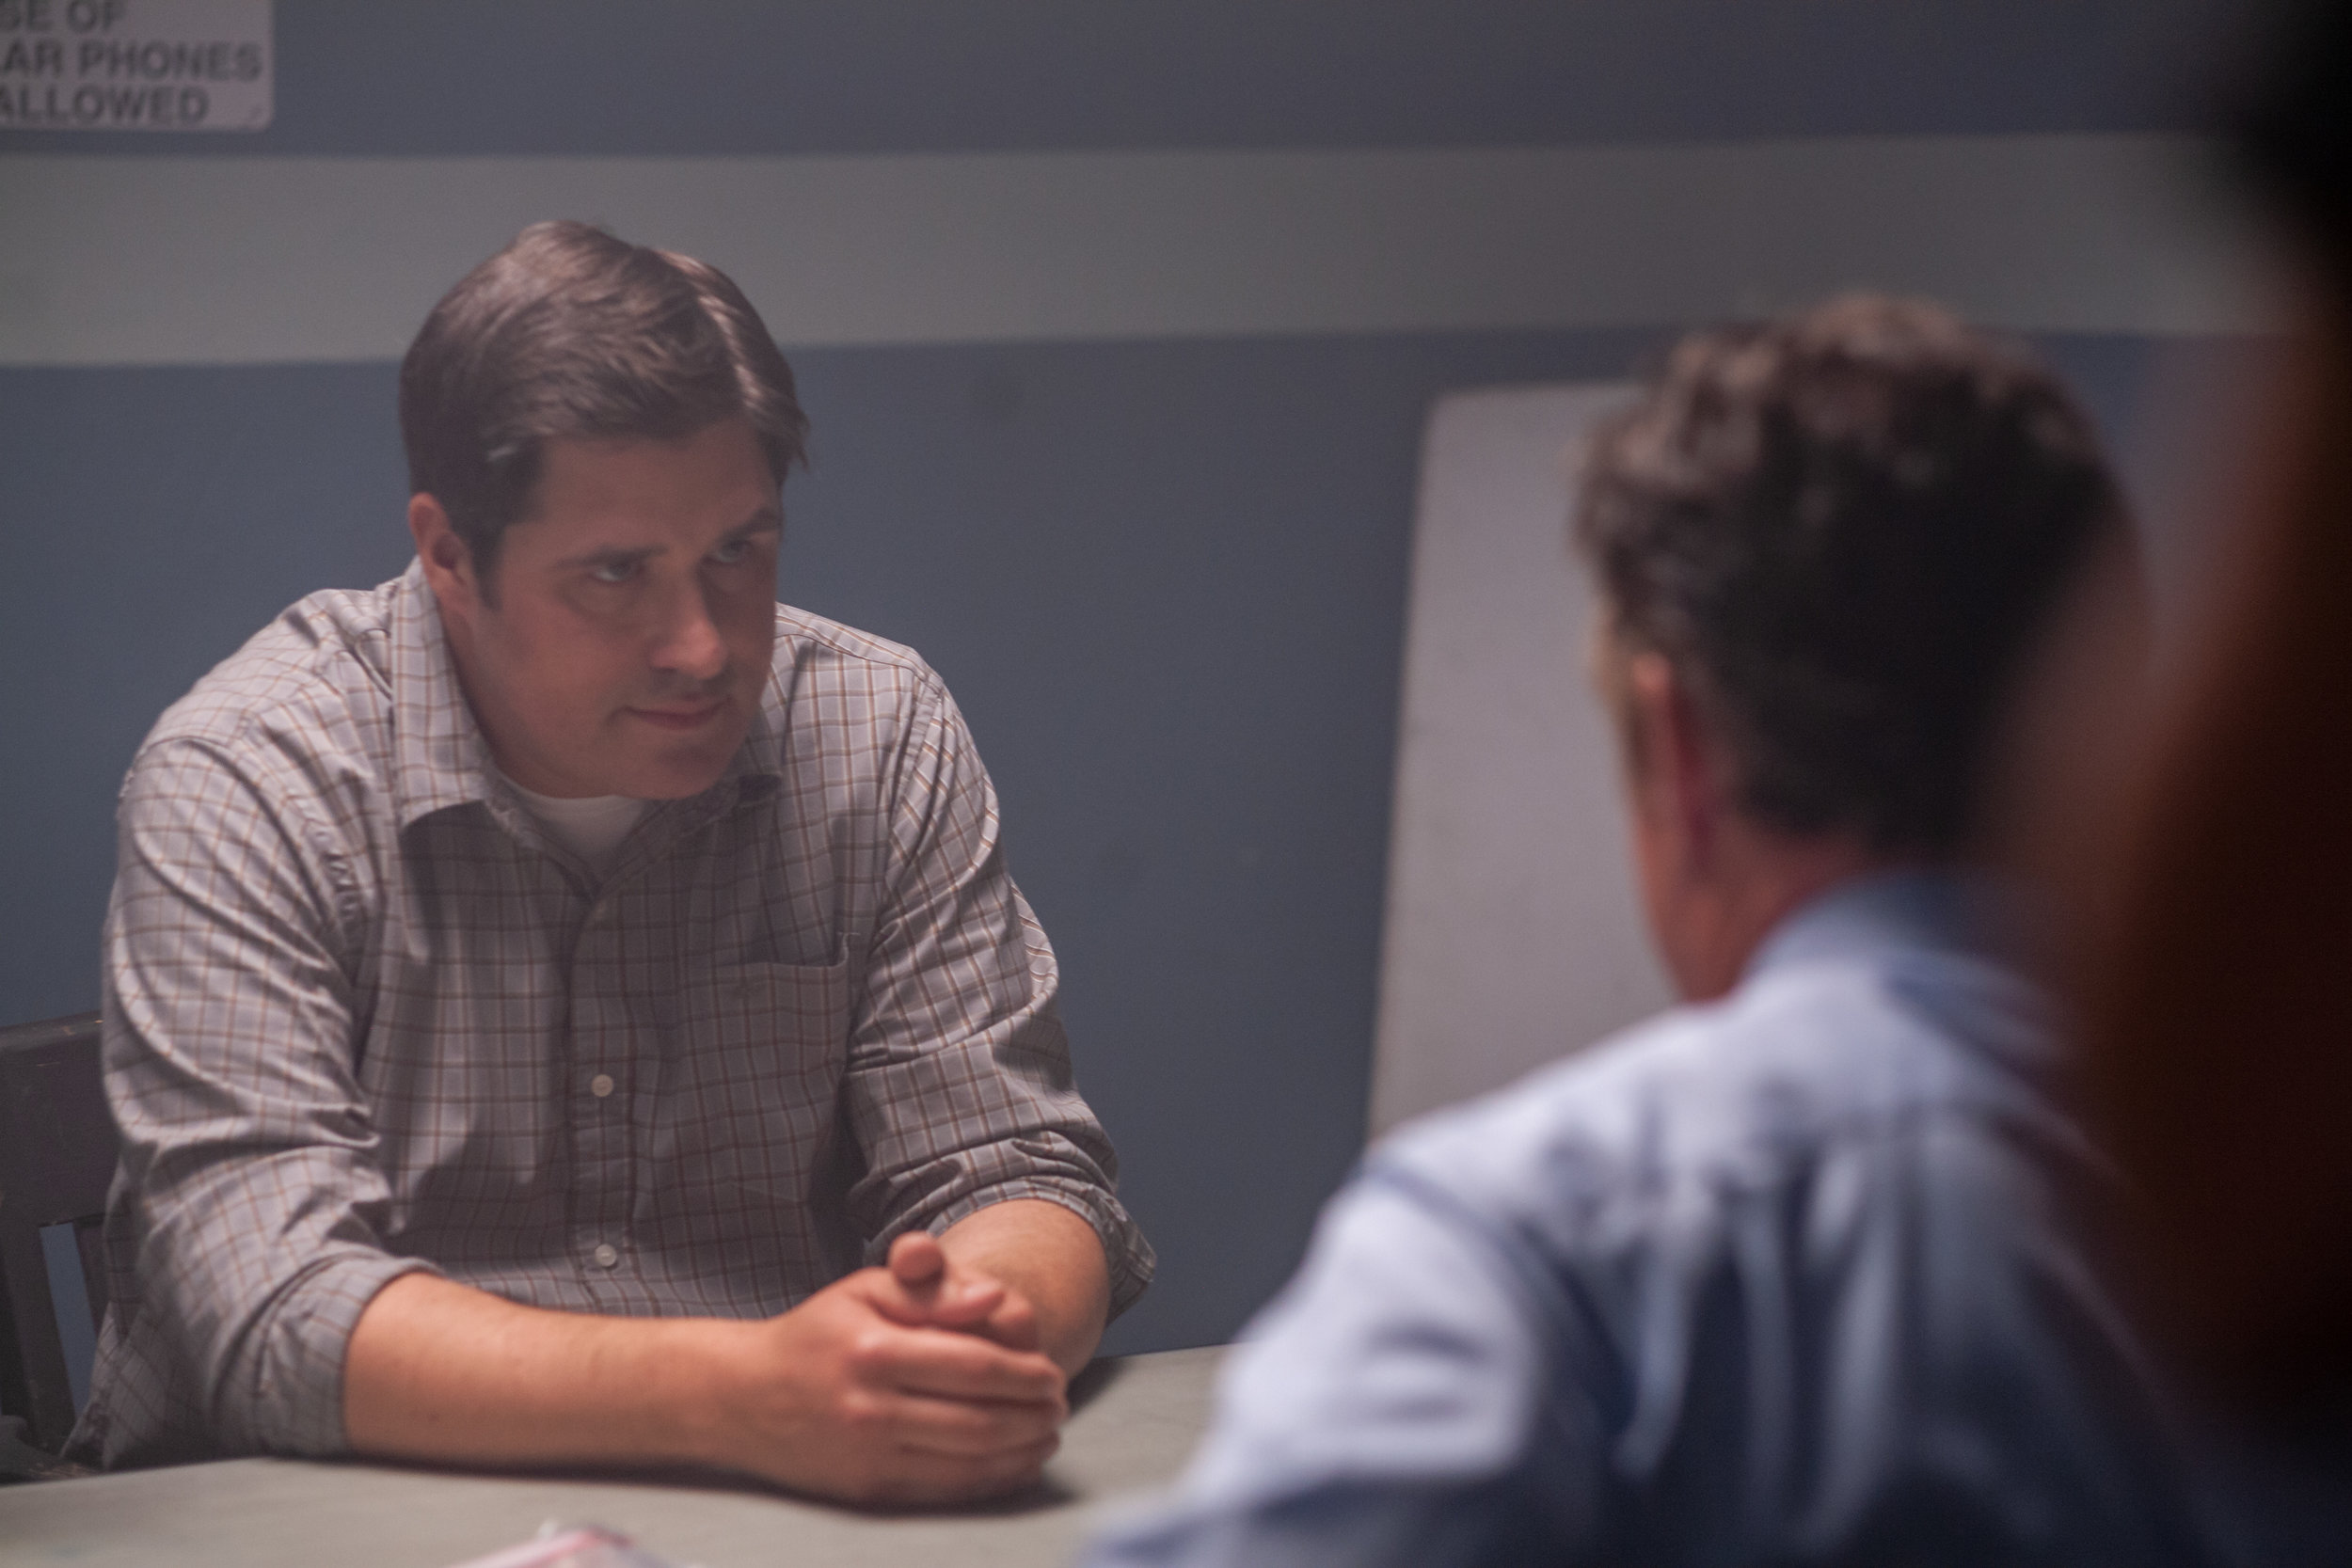 Actor Rich Sommer ( Mad Men ) performs a tense scene in an interrogation room.